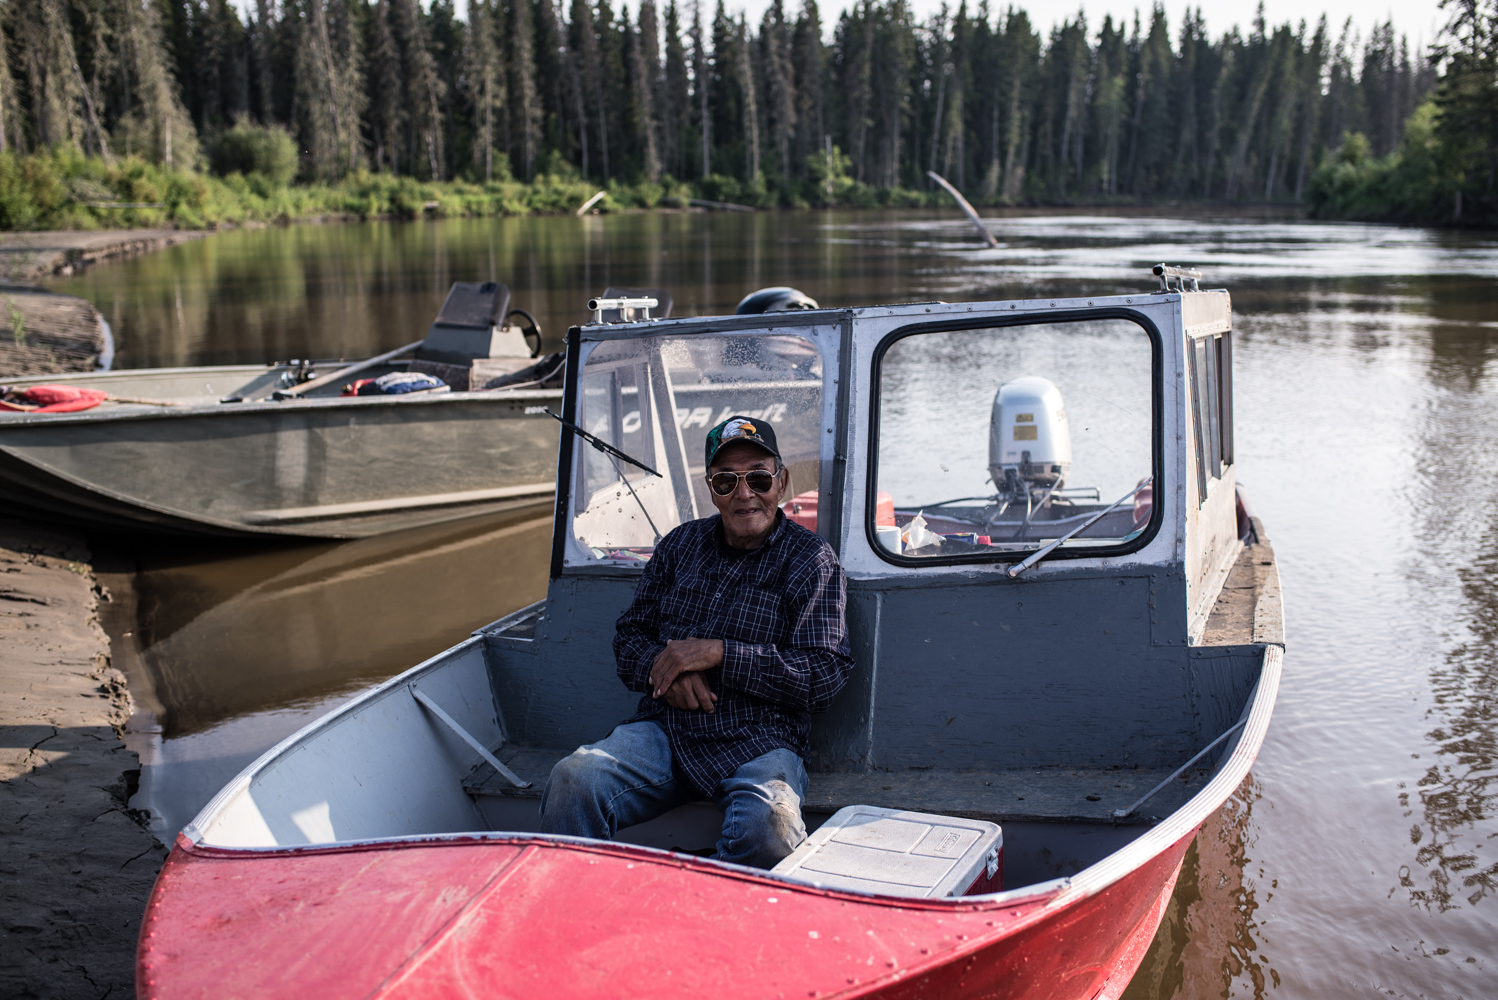 Archie Antoine is an Elder from Mikisew Cree First Nation. He is in his 80s and still lives on his trapline, July 2017.